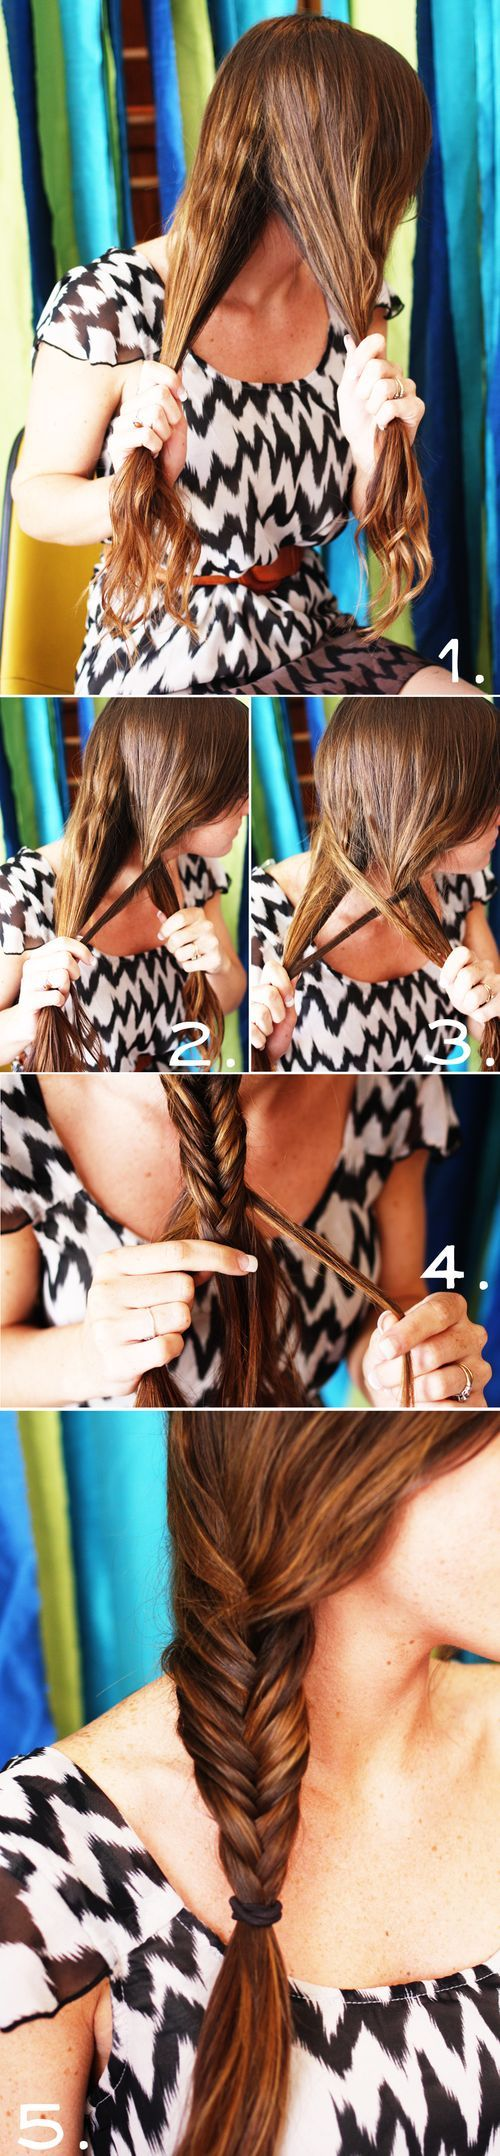 How-to: Fishtail braid. Braids Tutorials, Hair Tutorials, Braid Tutorials, Long Hair, Beautiful, Hair Style, Fishtail Braids, Braids Hair, Fish Tail Braids